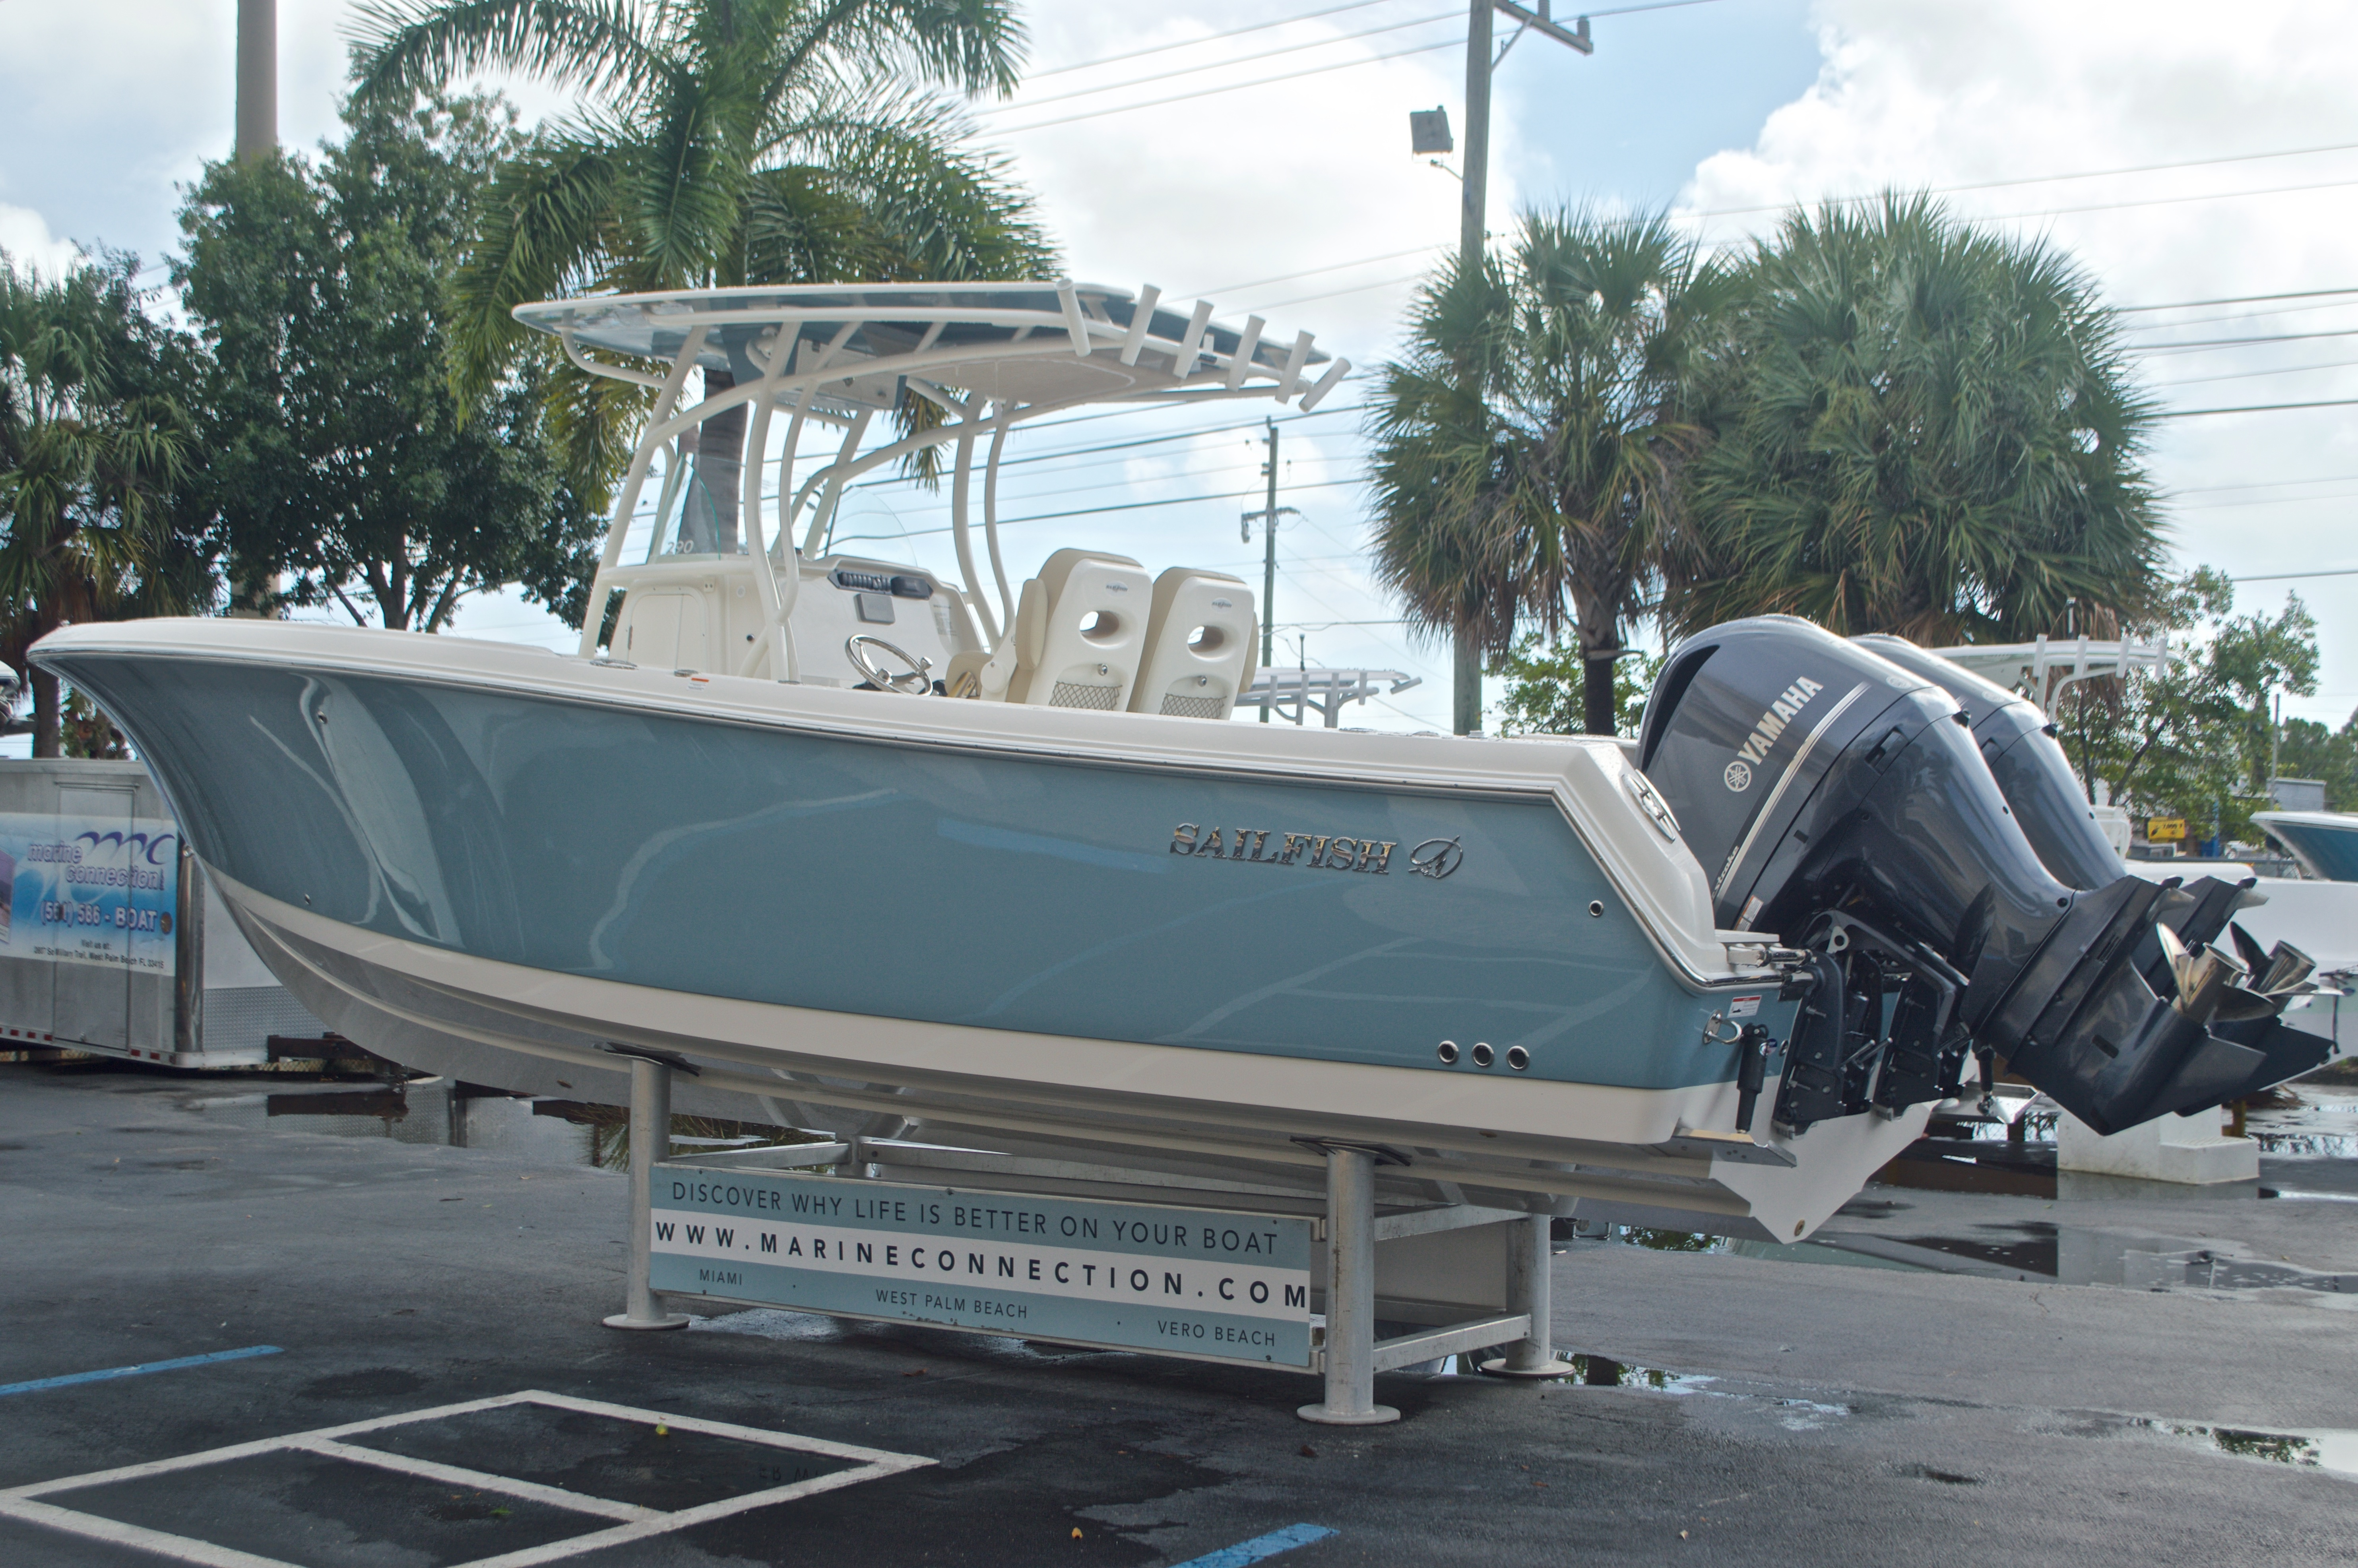 Thumbnail 6 for New 2017 Sailfish 290 CC Center Console boat for sale in Miami, FL